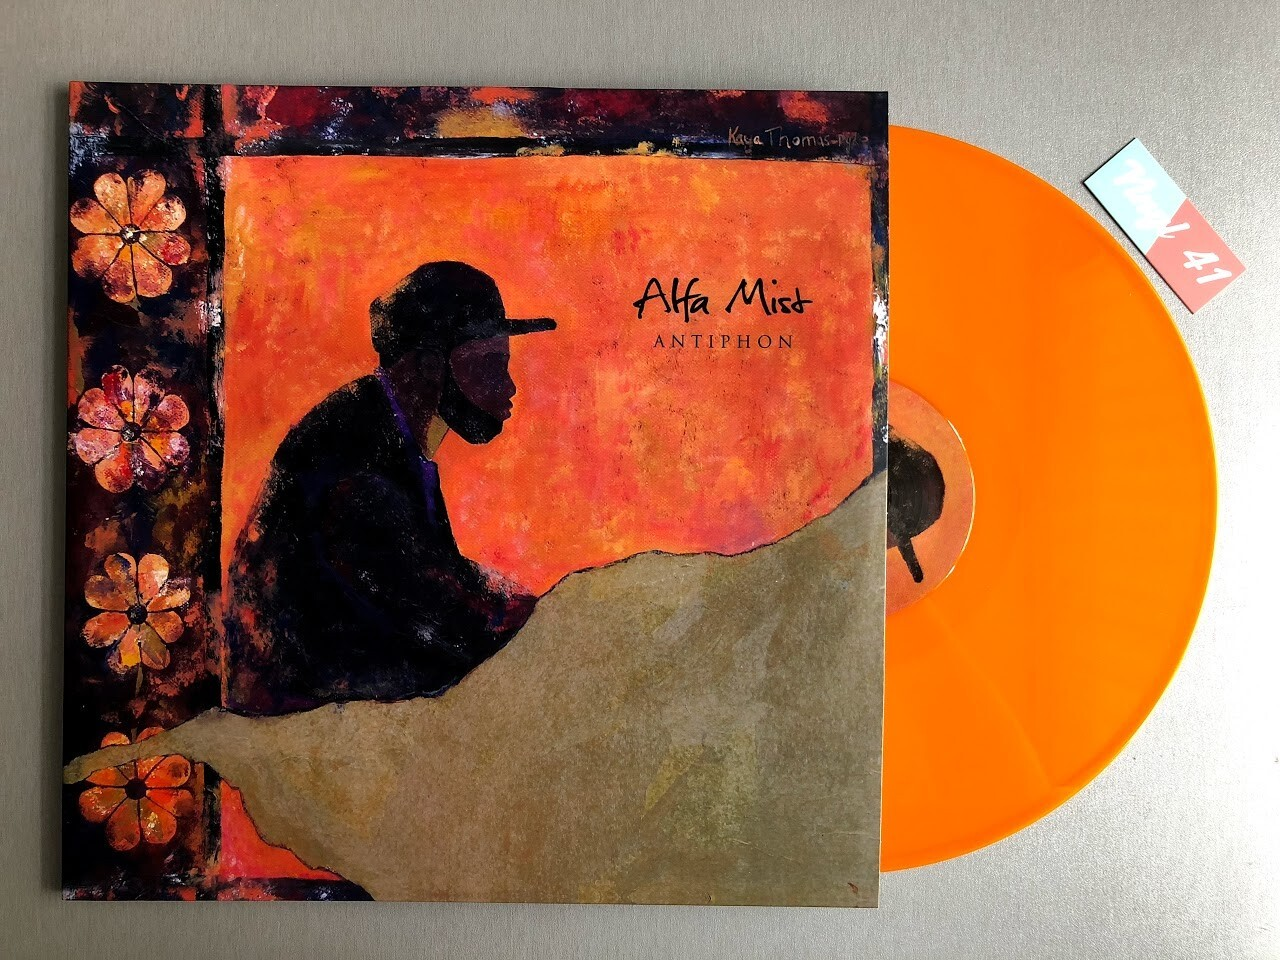 Alfa Mist - Antiphon (Black Acre Records)